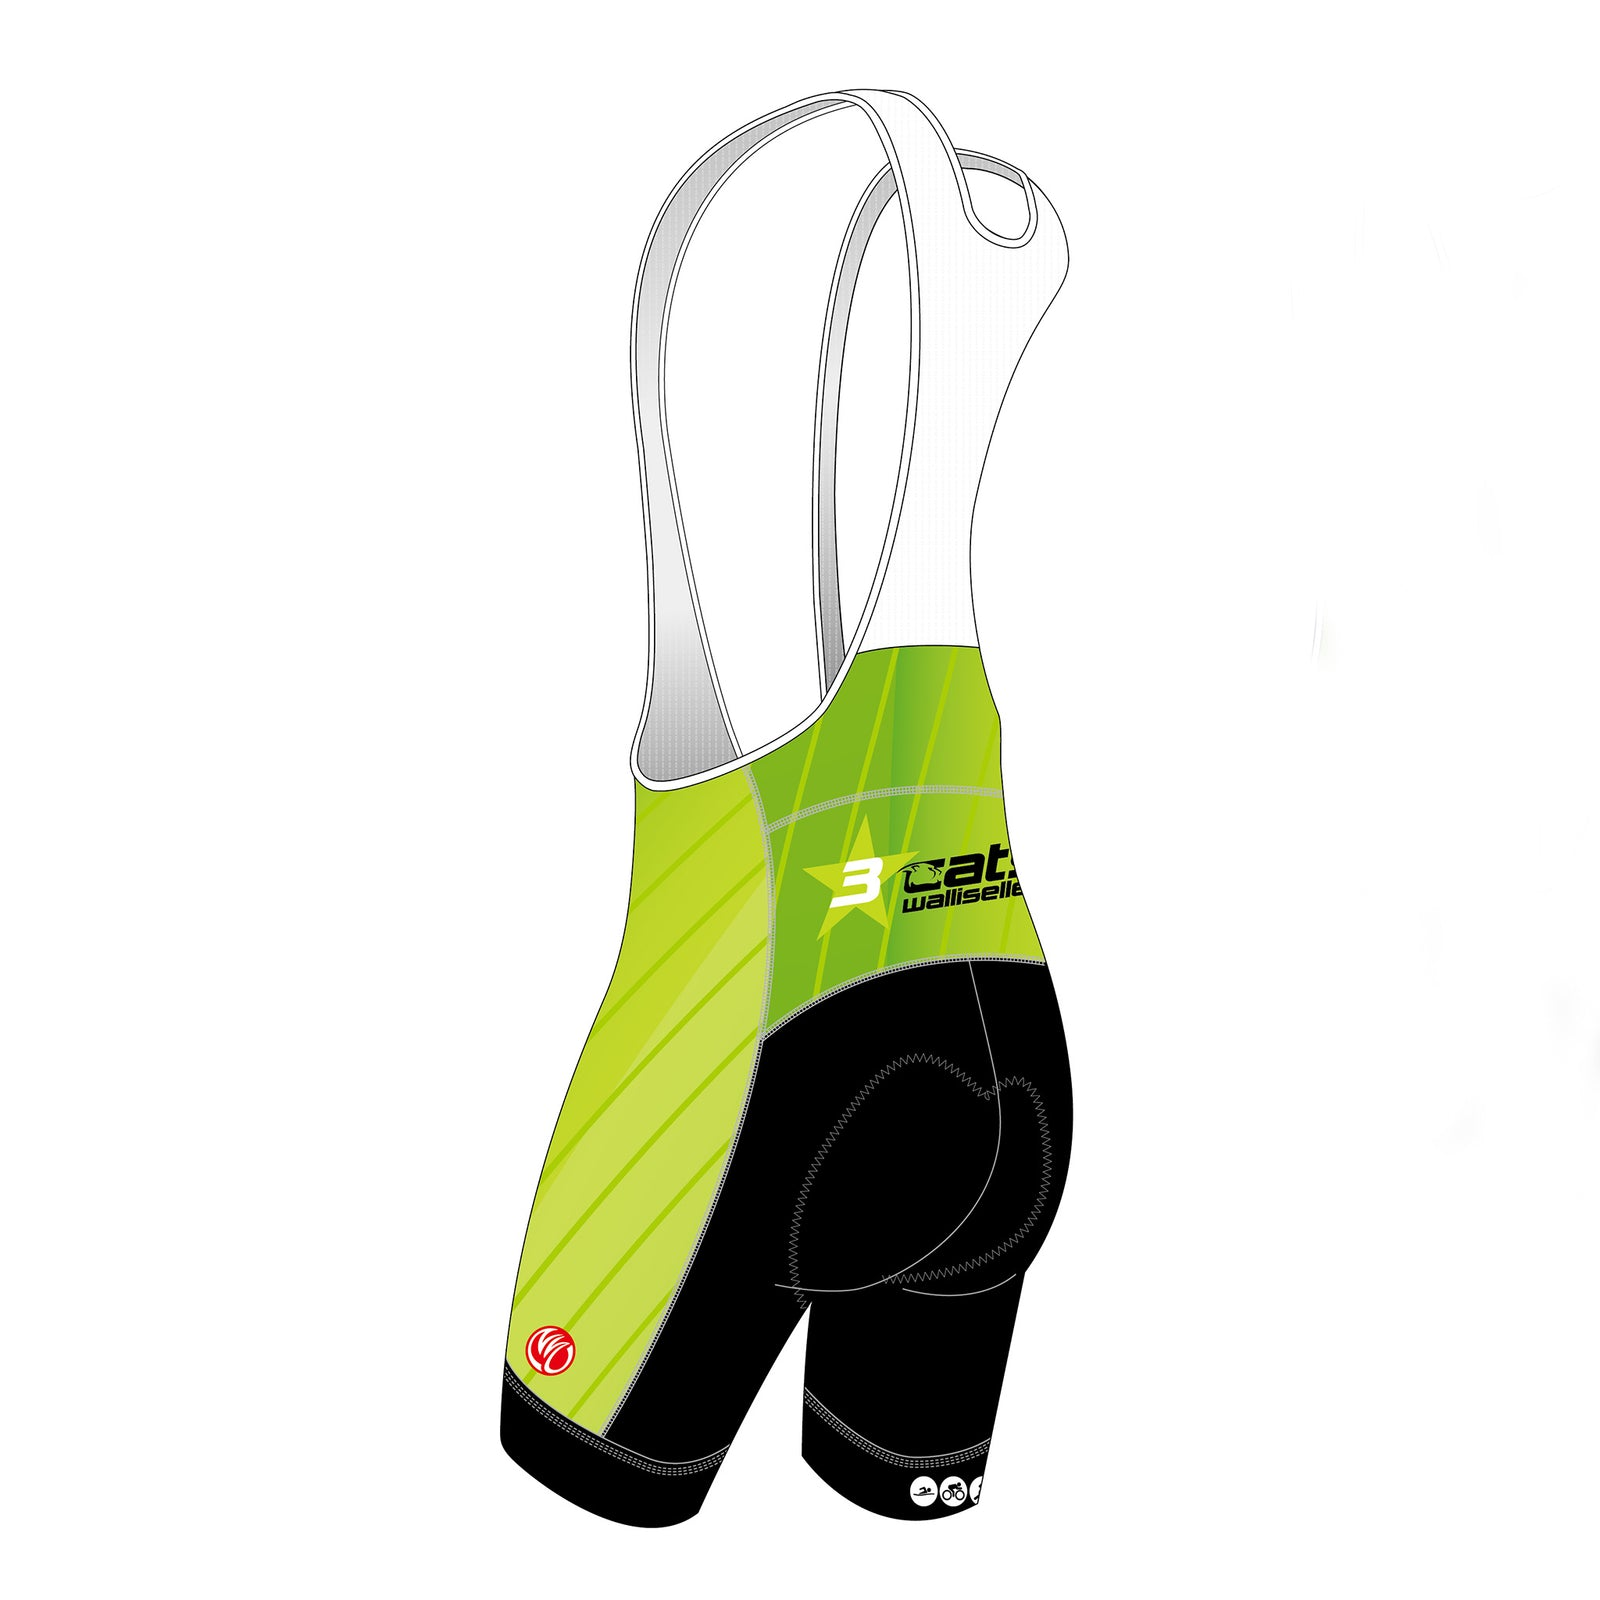 3star cats GOLD Cycling Bib Shorts